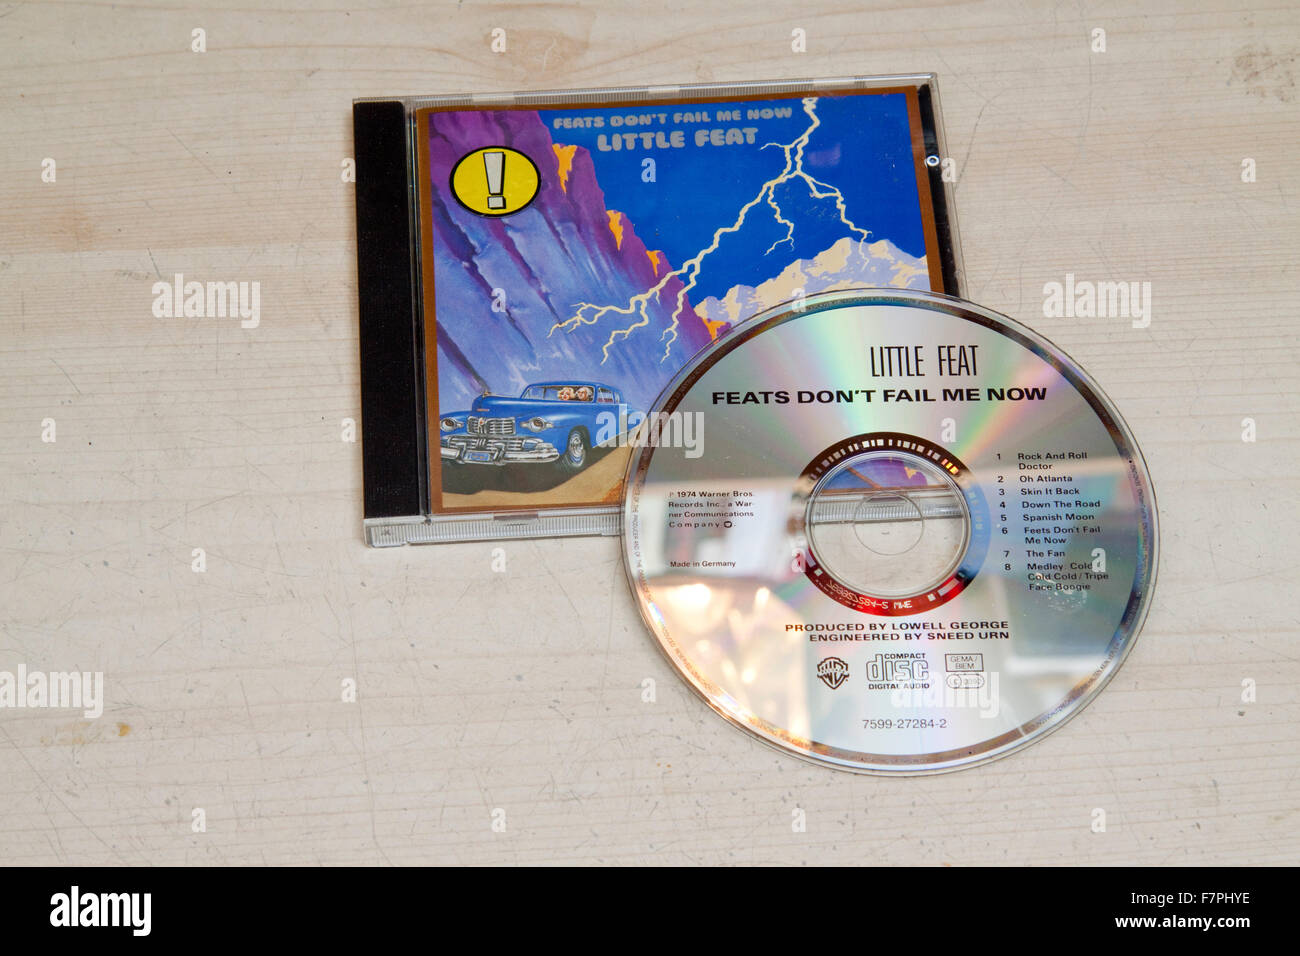 CD and case of  Little Feat's 1974 album 'Feats Don't Fail Me Now' - Stock Image